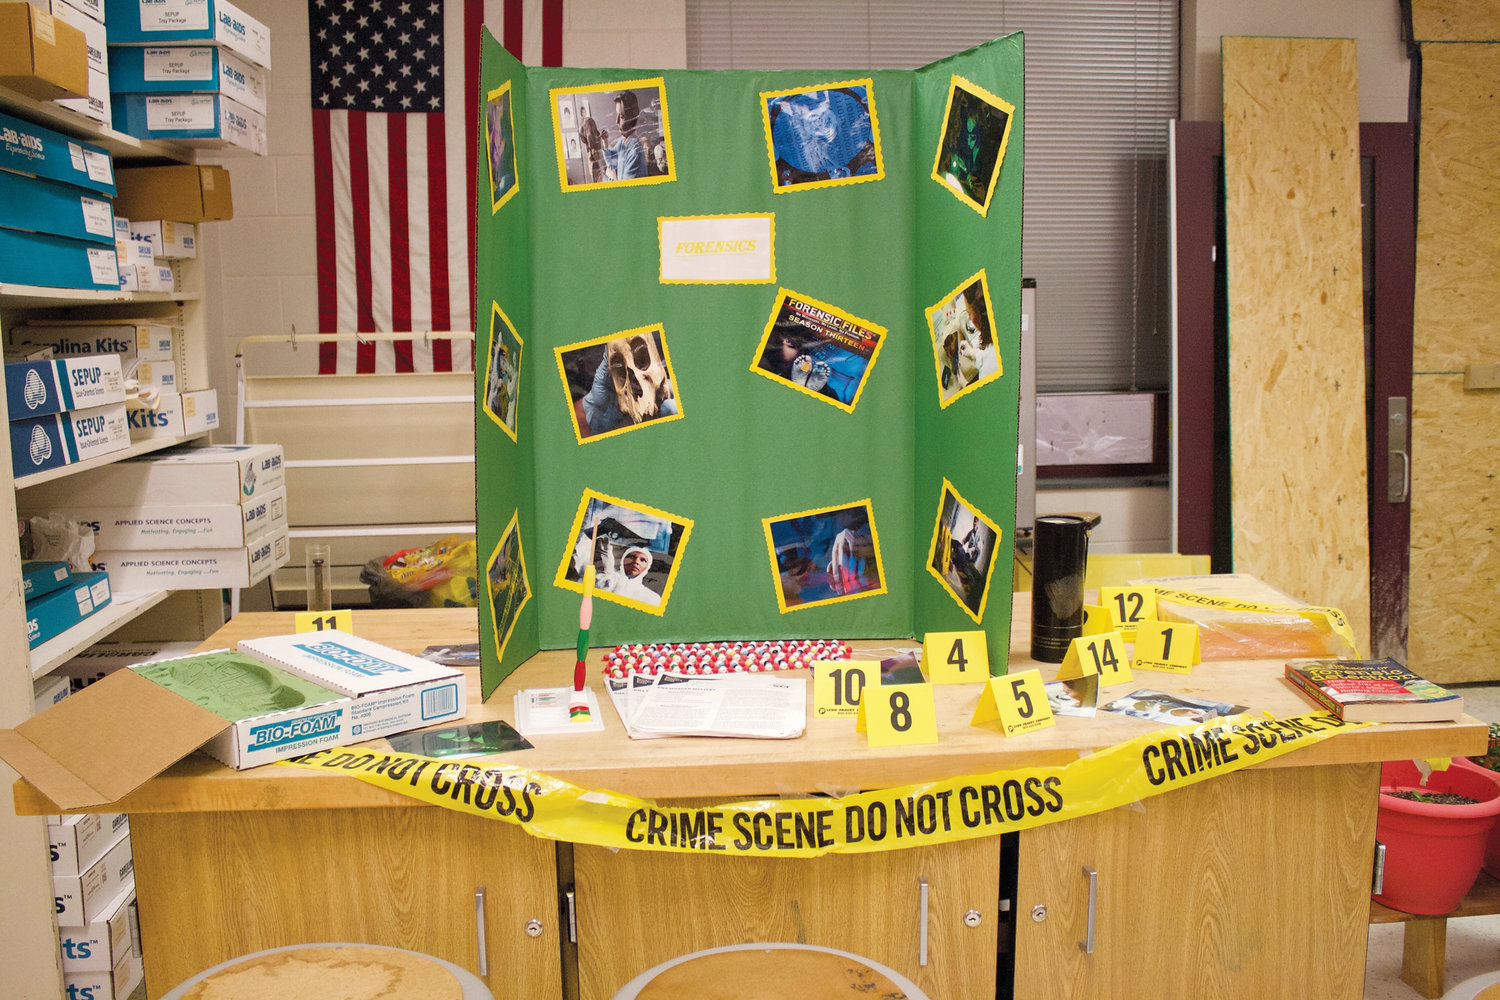 A forensics display is set up in Stacie Siebert's class at Overhills High School during a visit by Allen Bricker, a forensic supervisor at the Fayetteville Police Department.